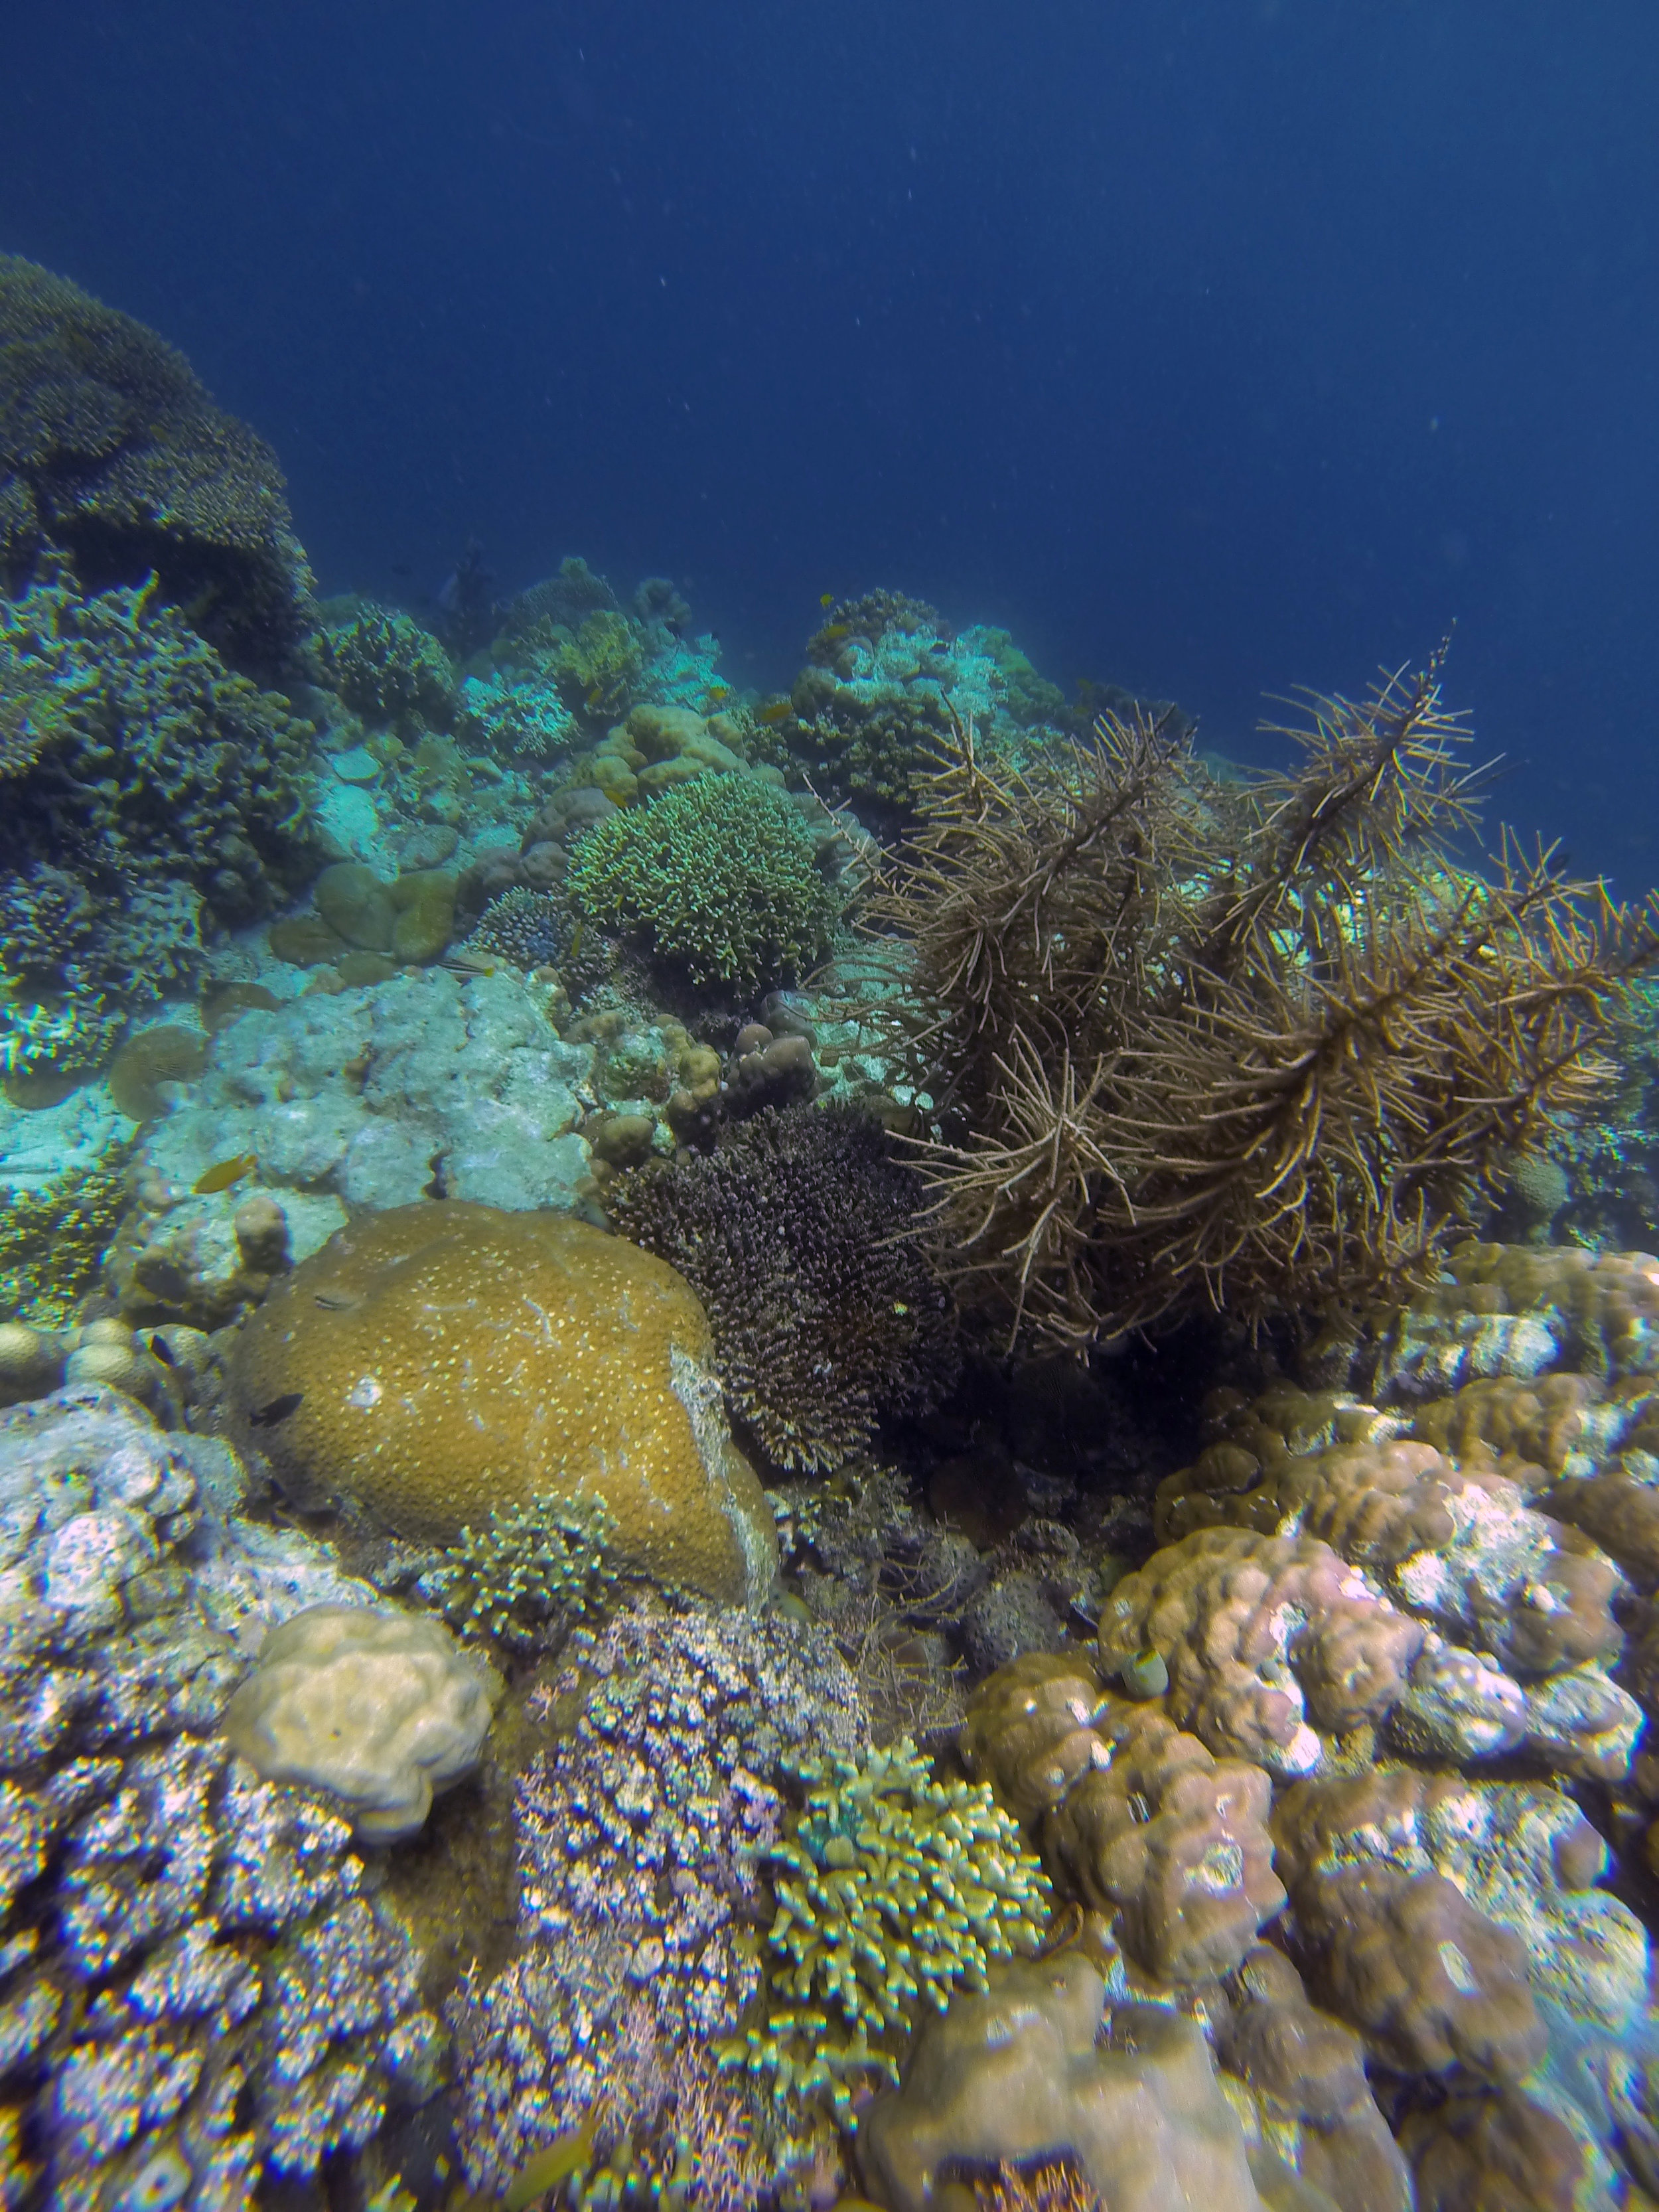 An underwater garden filled with varieties of soft corals, mushroom corals and underwater plants thrive around Mansud Wall. This photo was taken at a depth of around 10 to 15 feet.